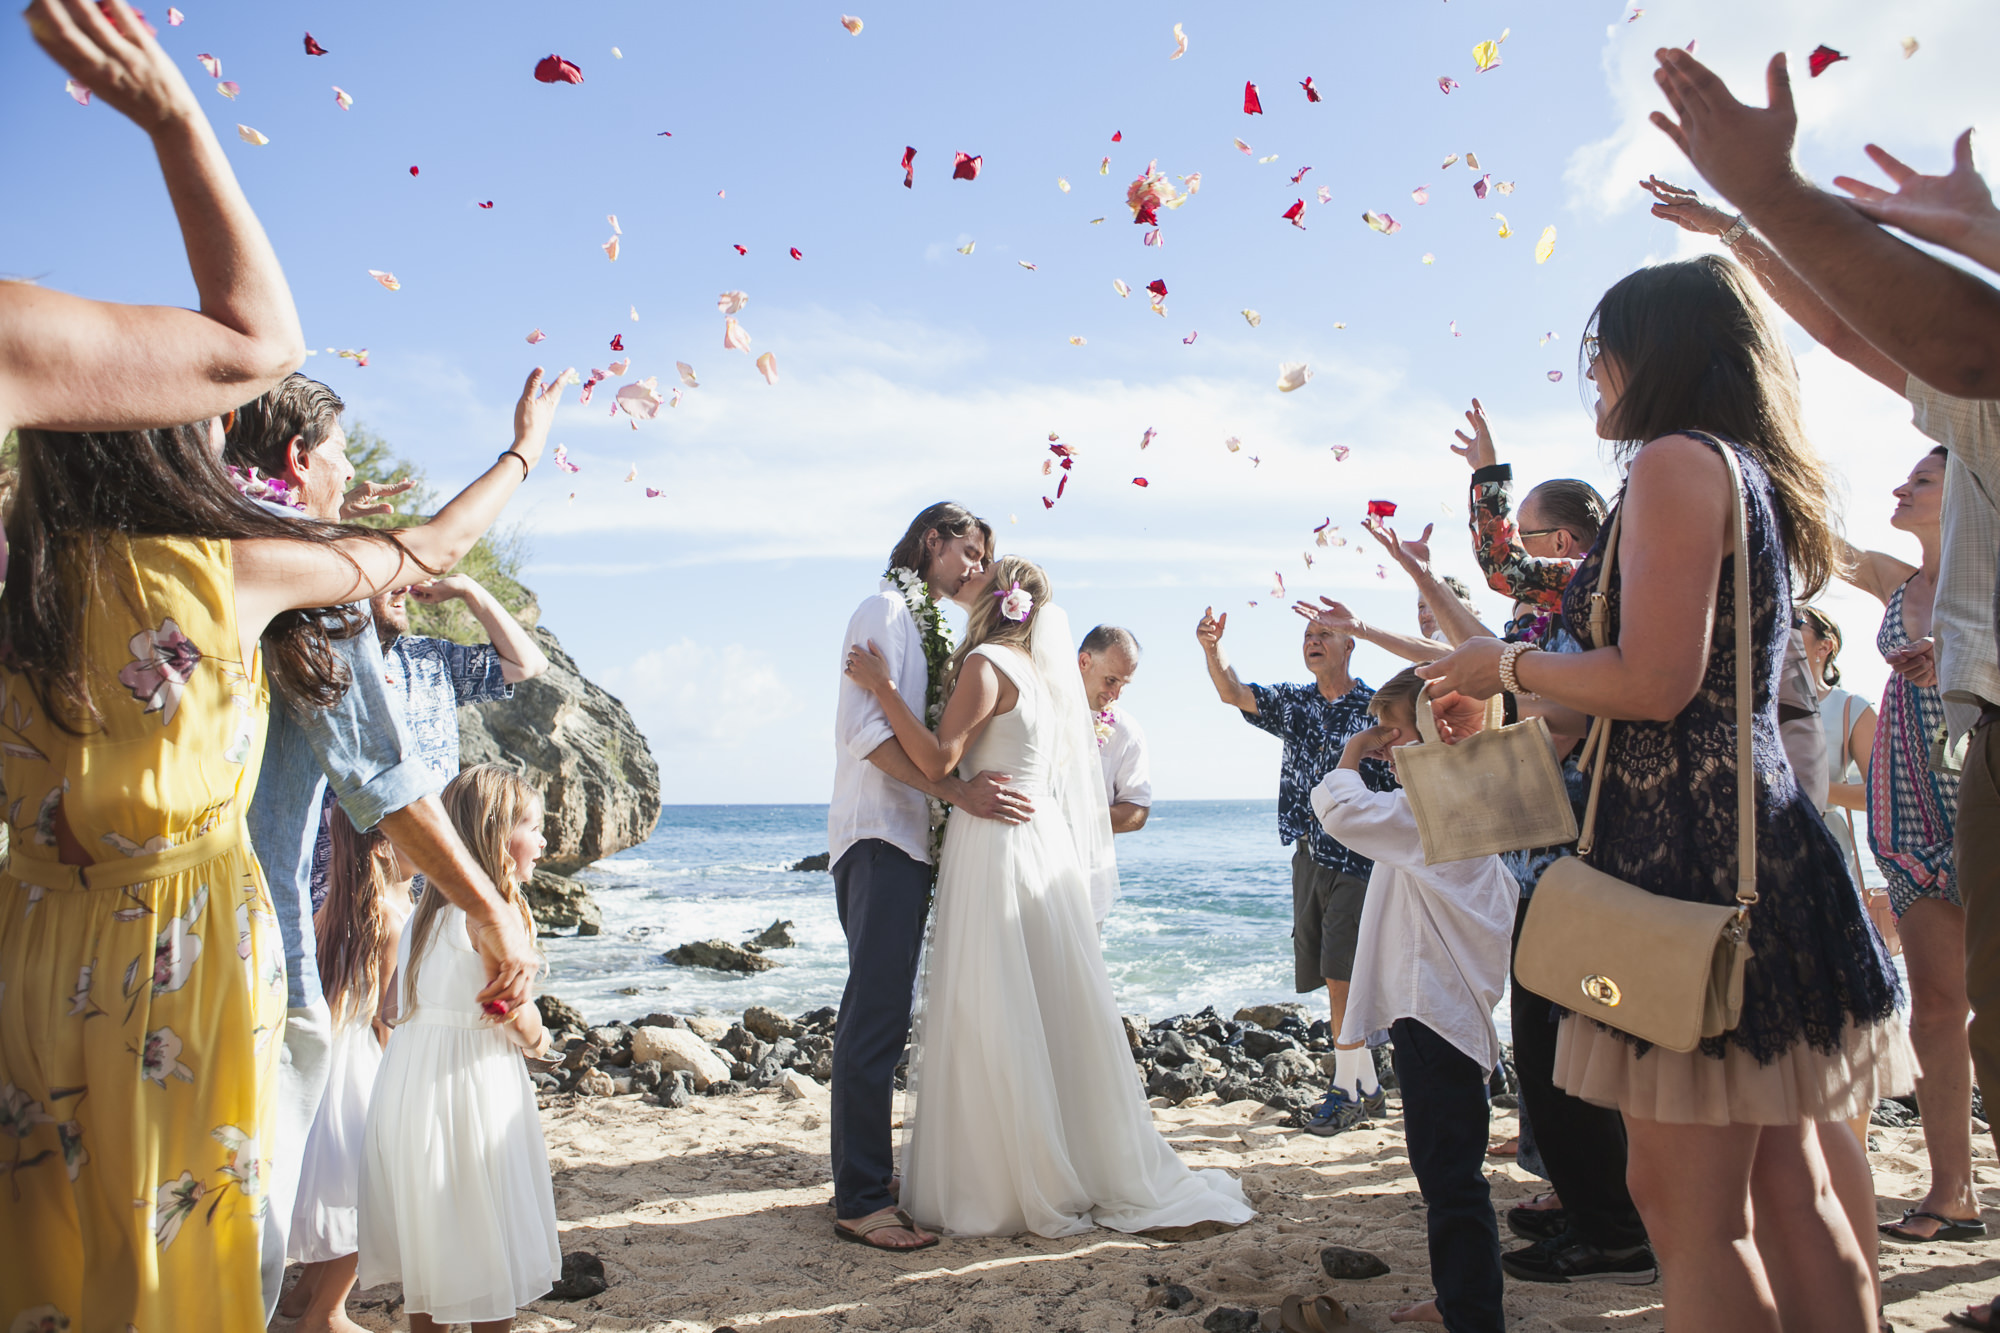 Wedding couple kiss on beach in Kauai with rose petals flying in celebration